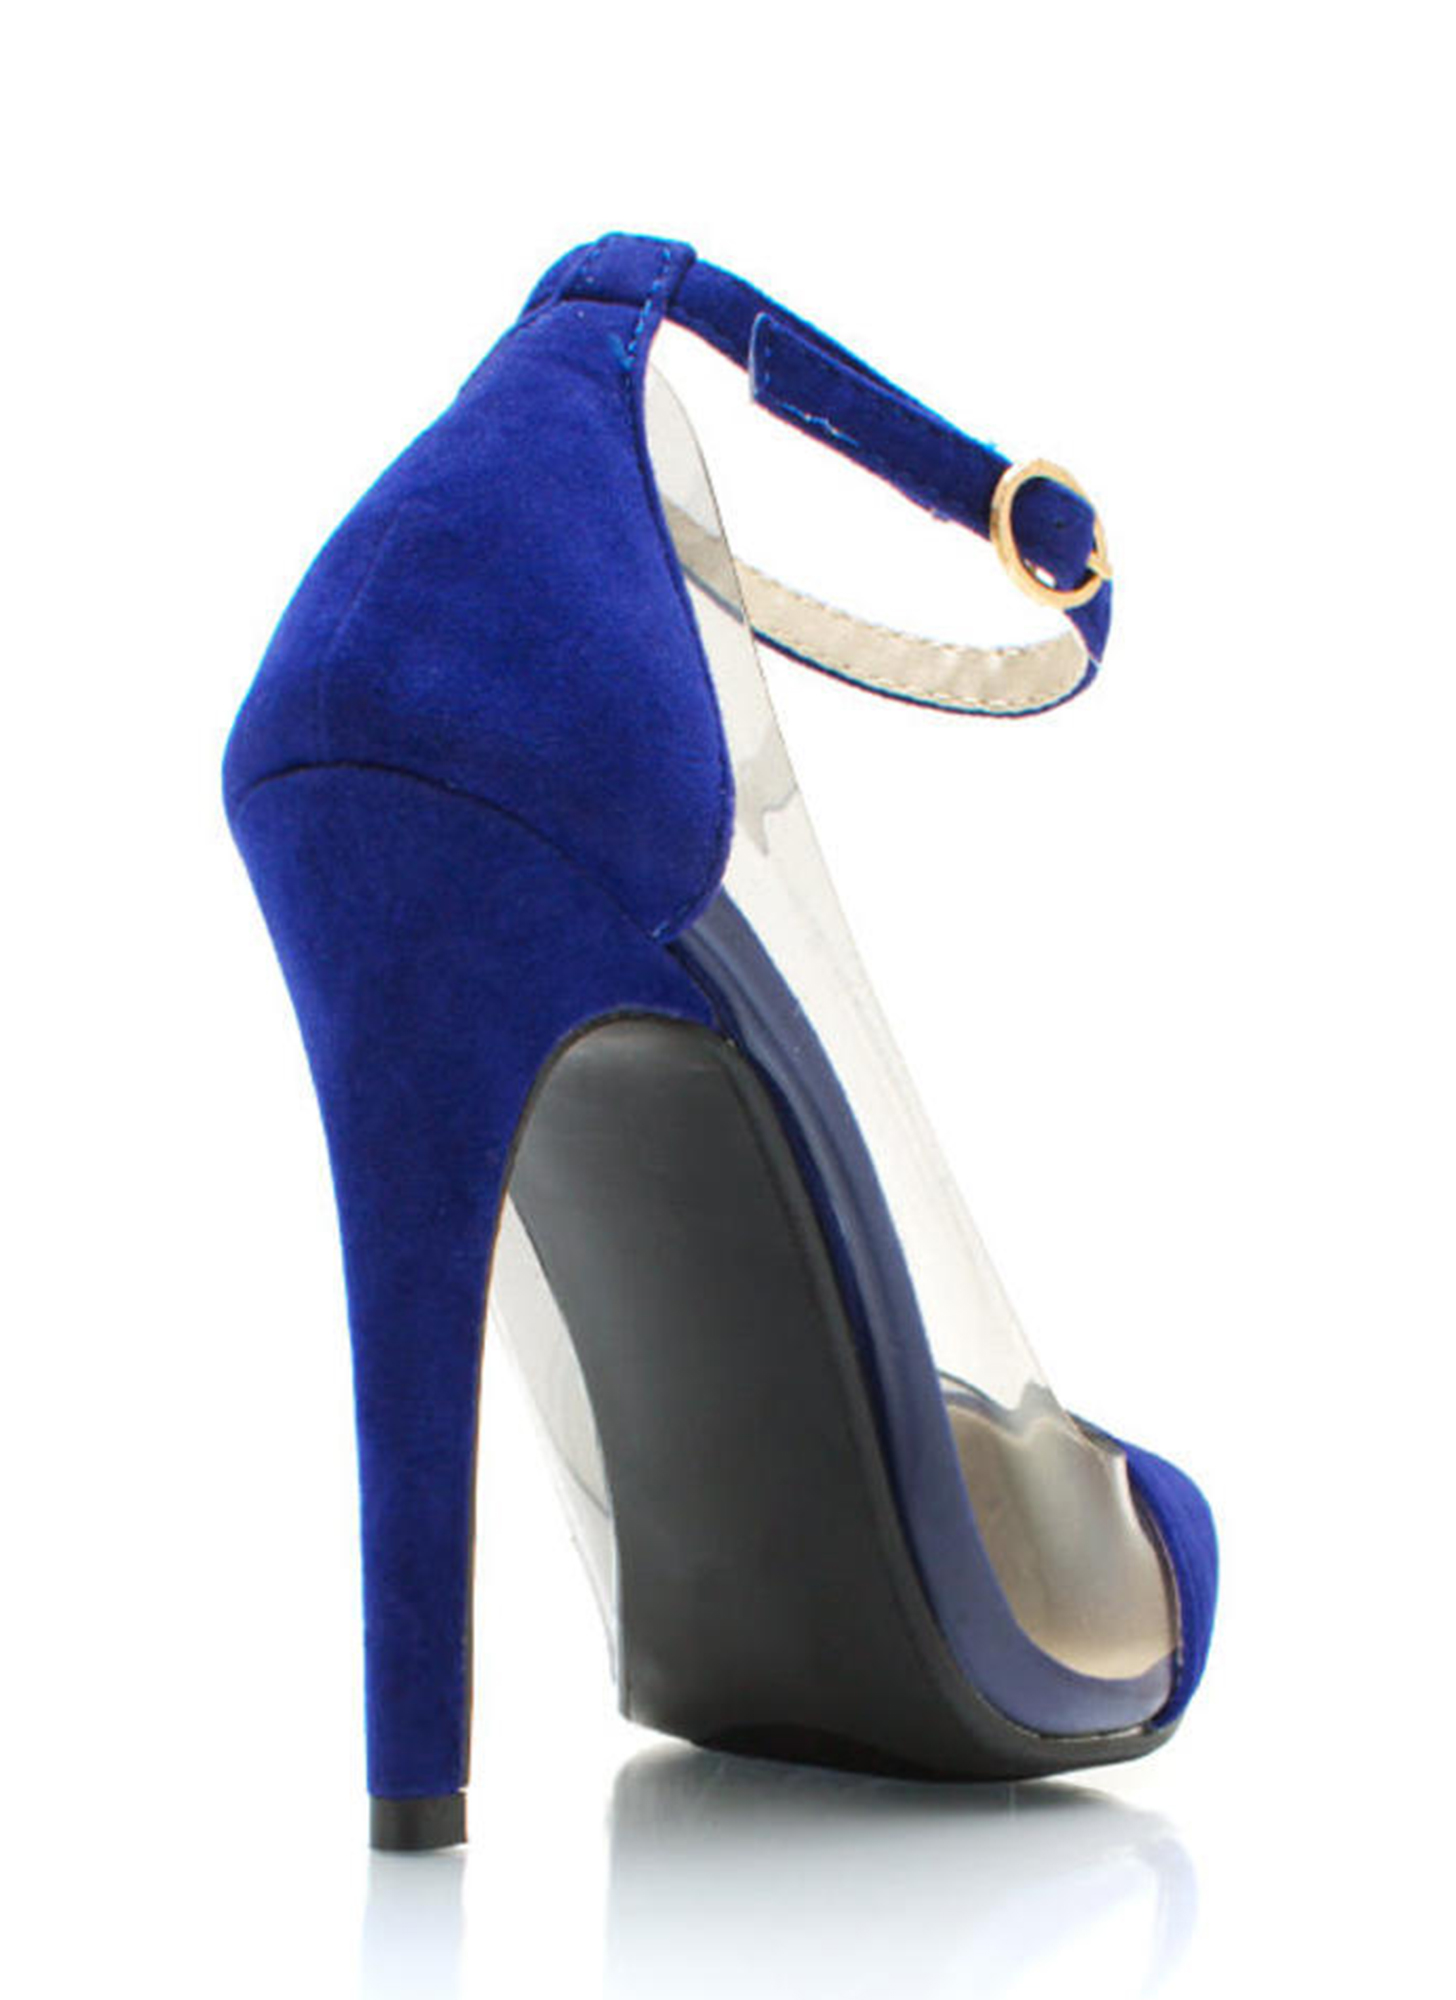 Show Some Skin Cap Toe Heels BLUE